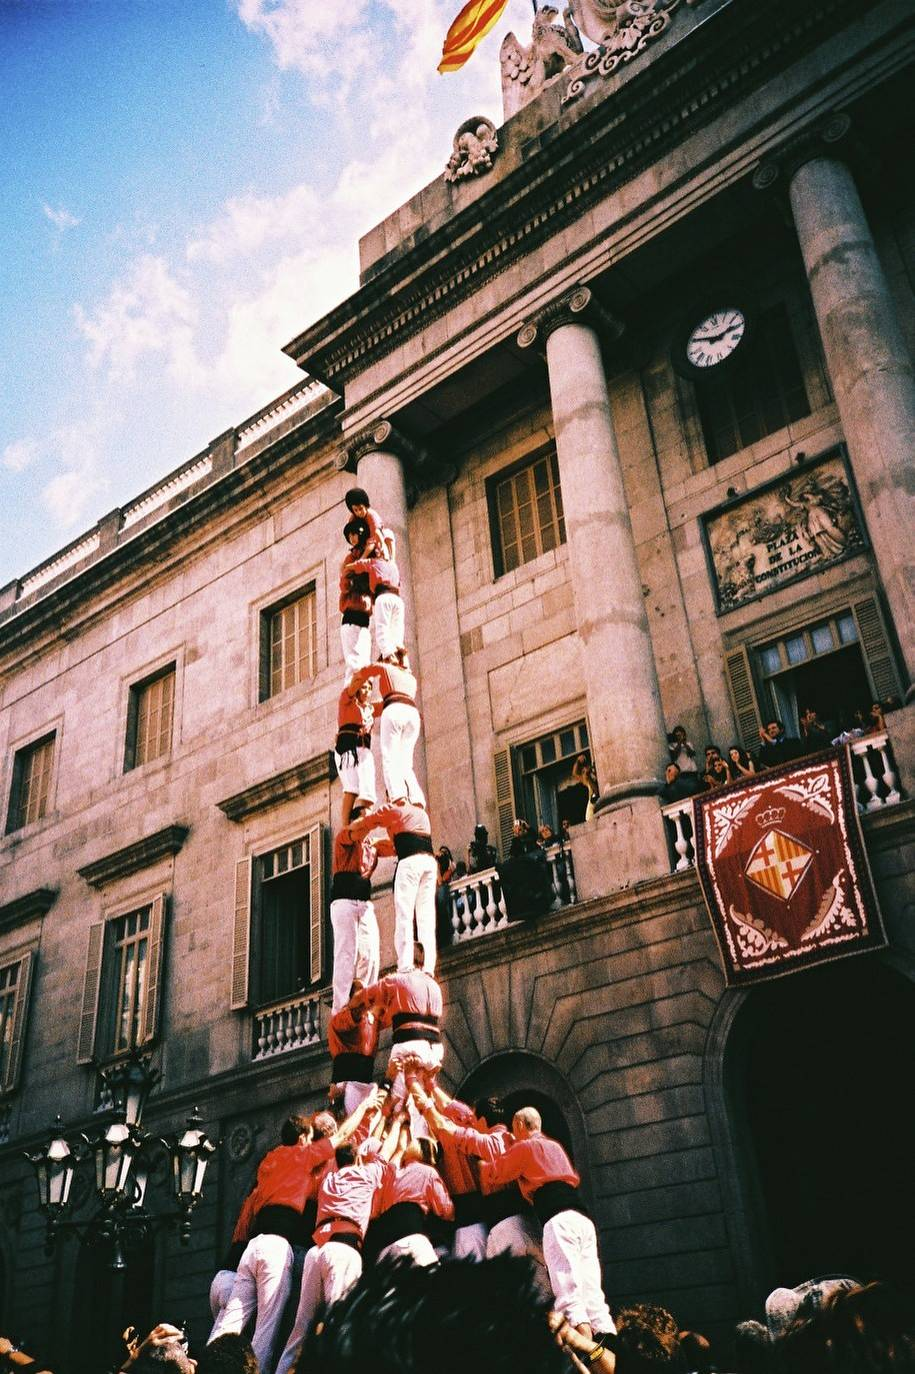 Els Castells - When Man Dared to Touch the Sky